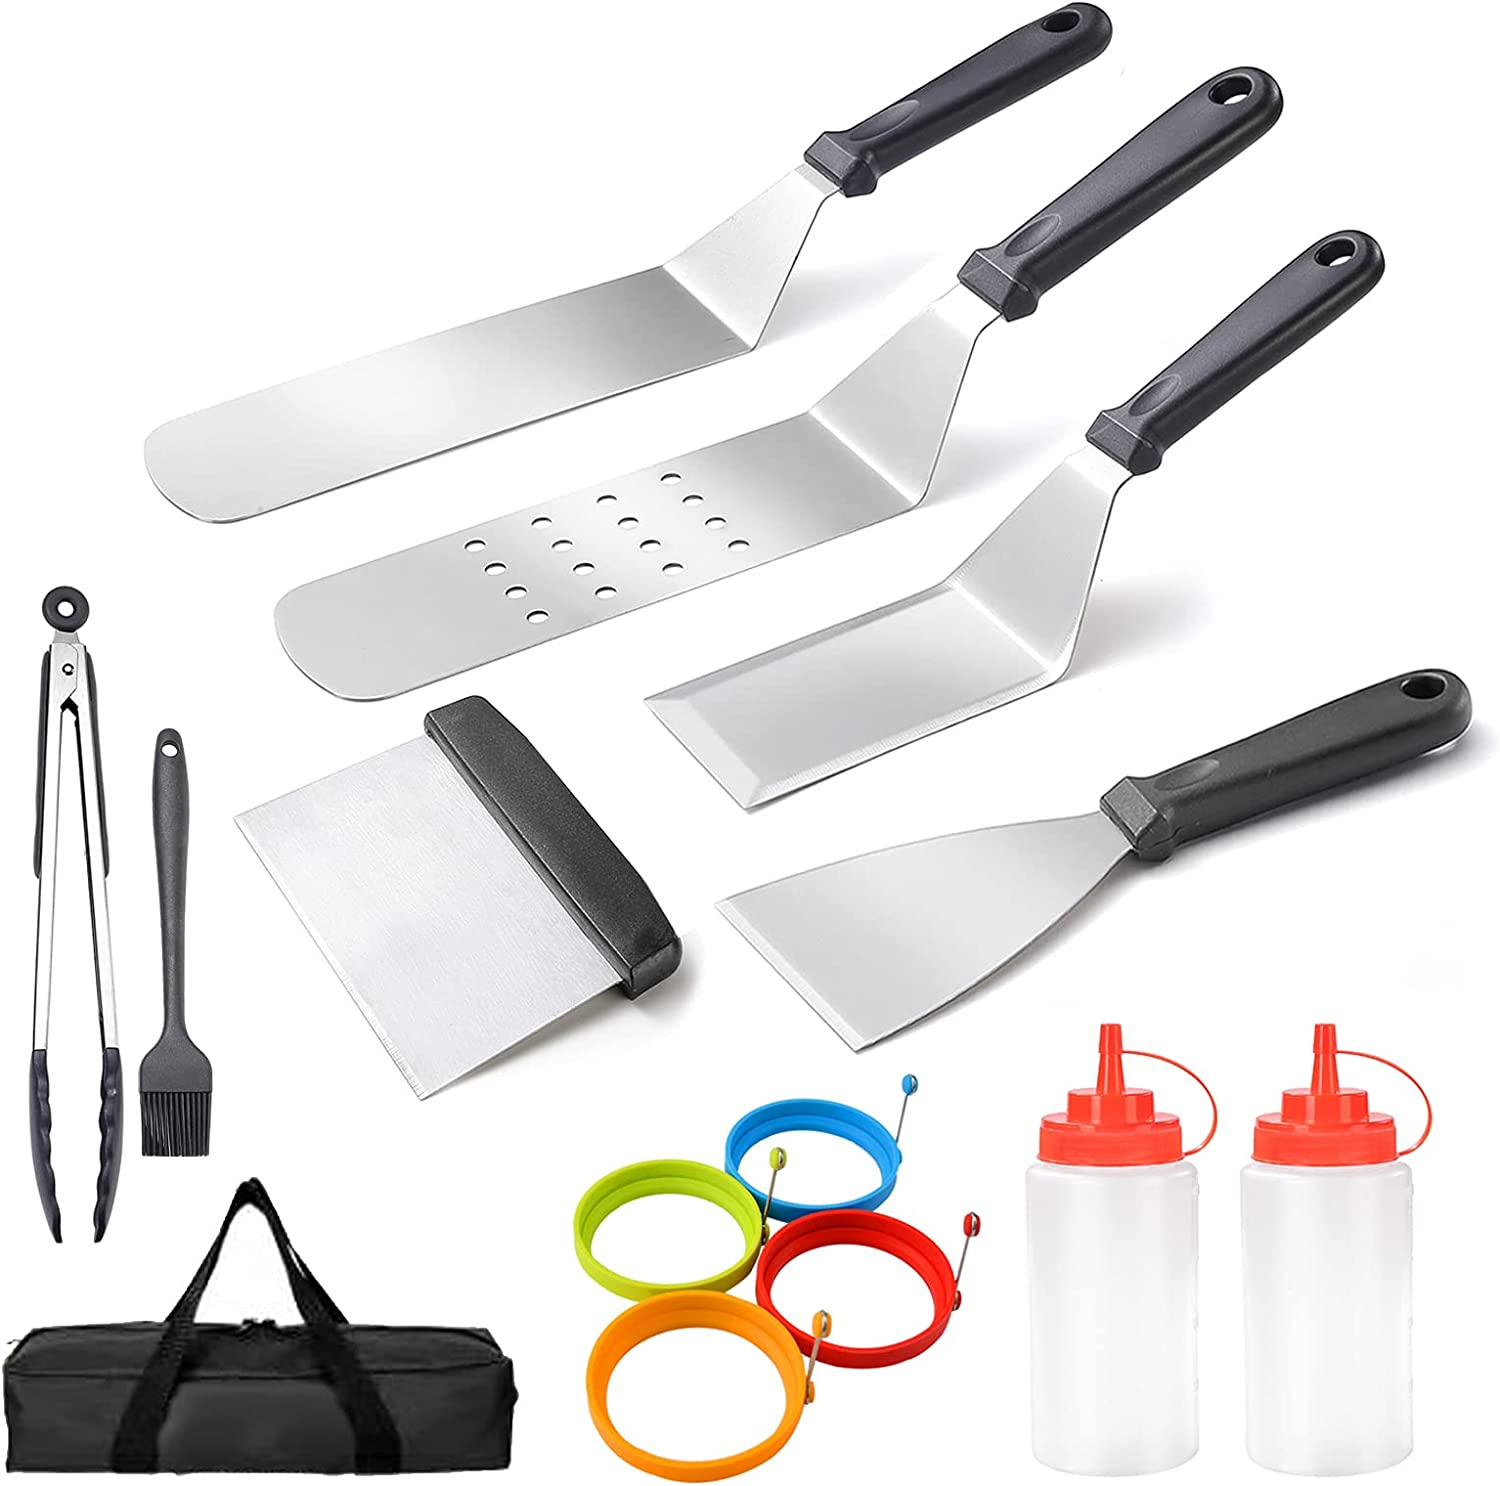 ULEE Griddle Accessories Compatible with Blackstone, Premium Flat Top Grill Accessories, Perfect Griddle Spatula Set for Outdoor BBQ, Teppanyaki and Camping